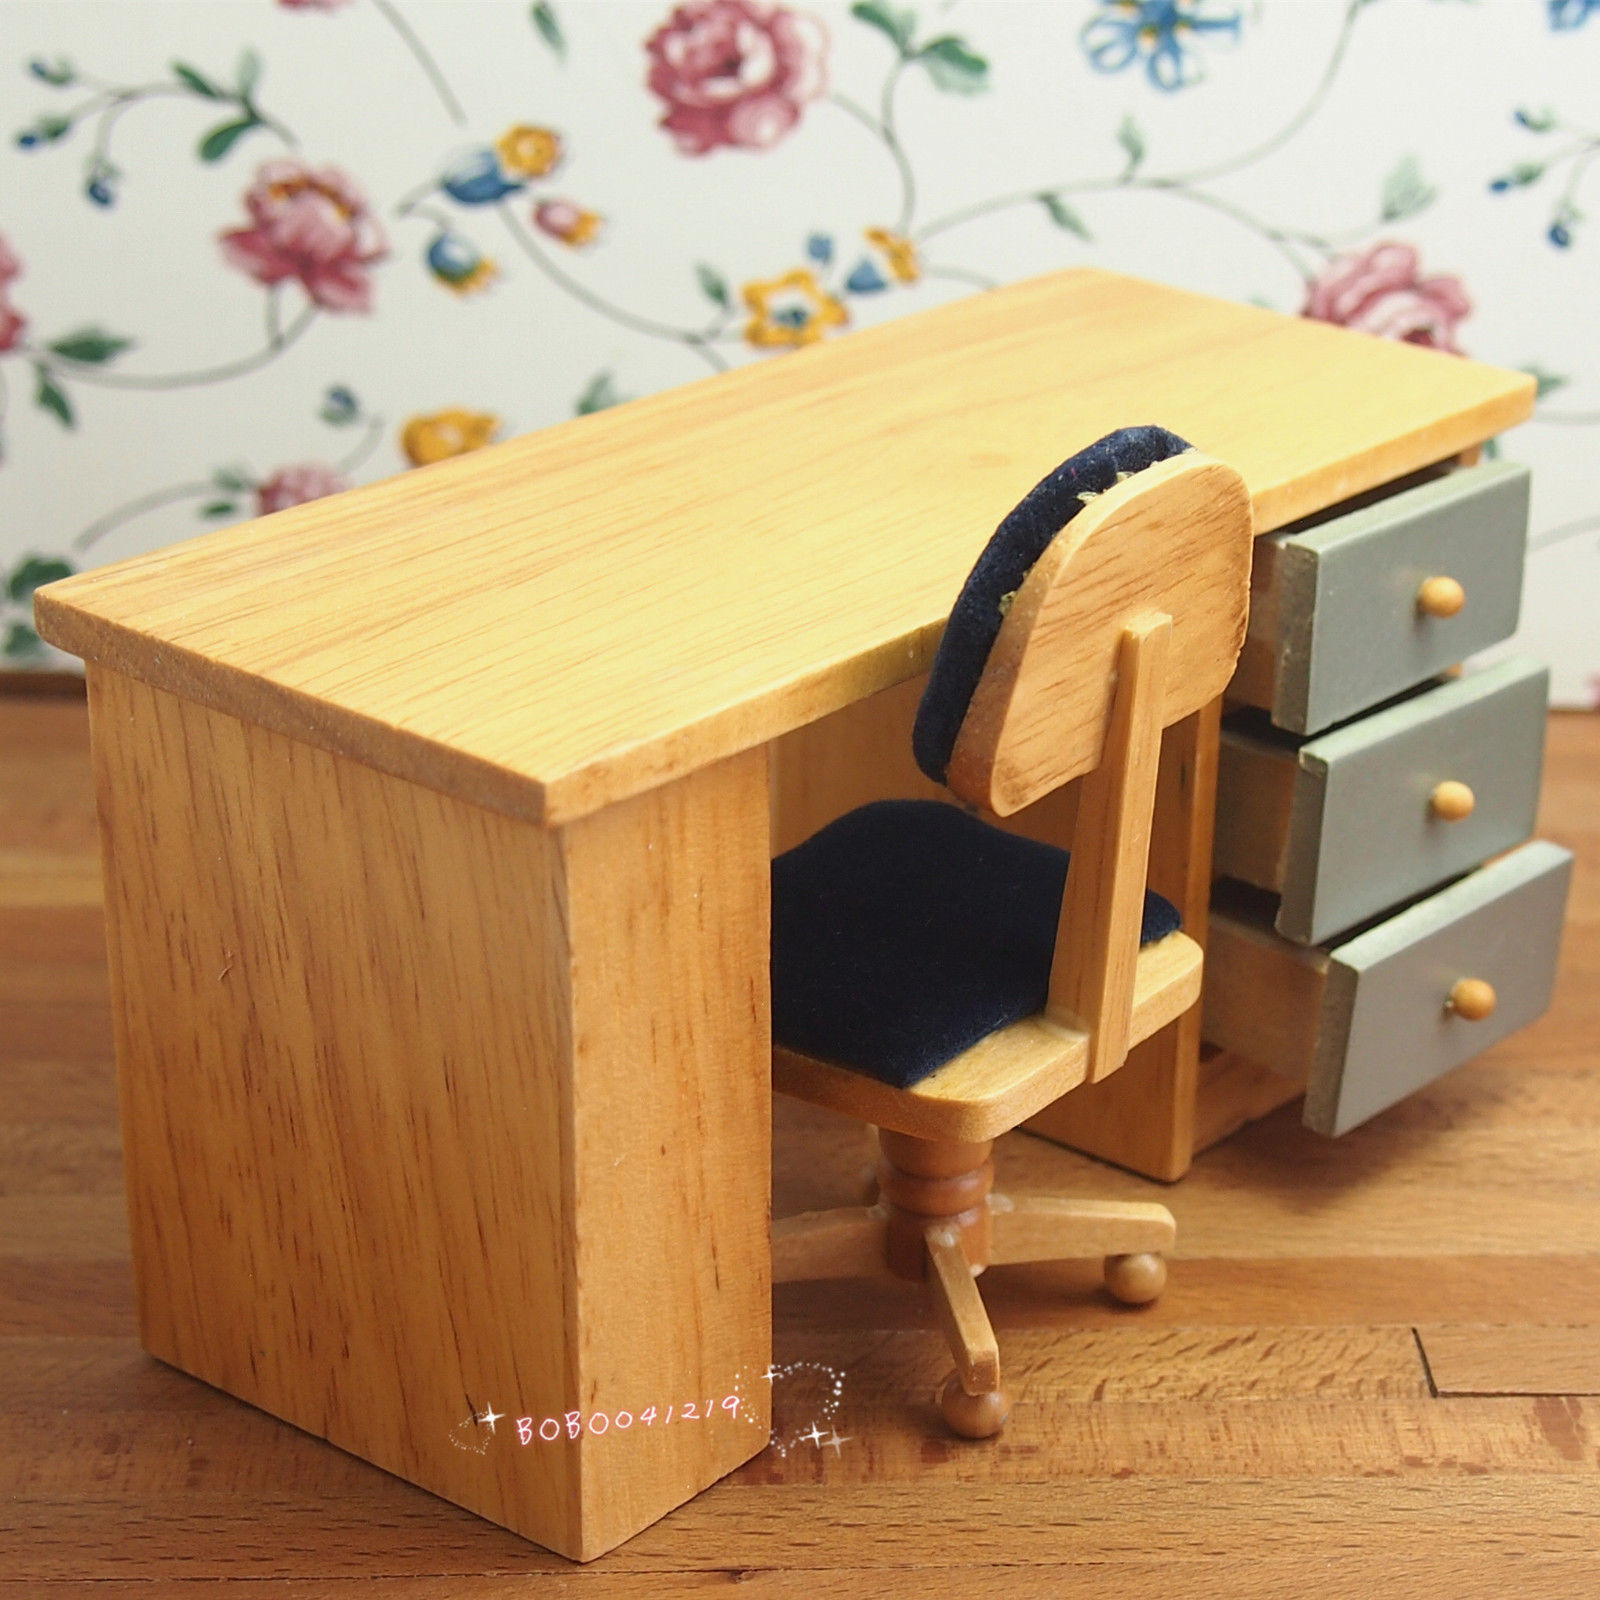 Wooden Study Room: Aliexpress.com : Buy Dollhouse Miniature 1:12 Toy Study